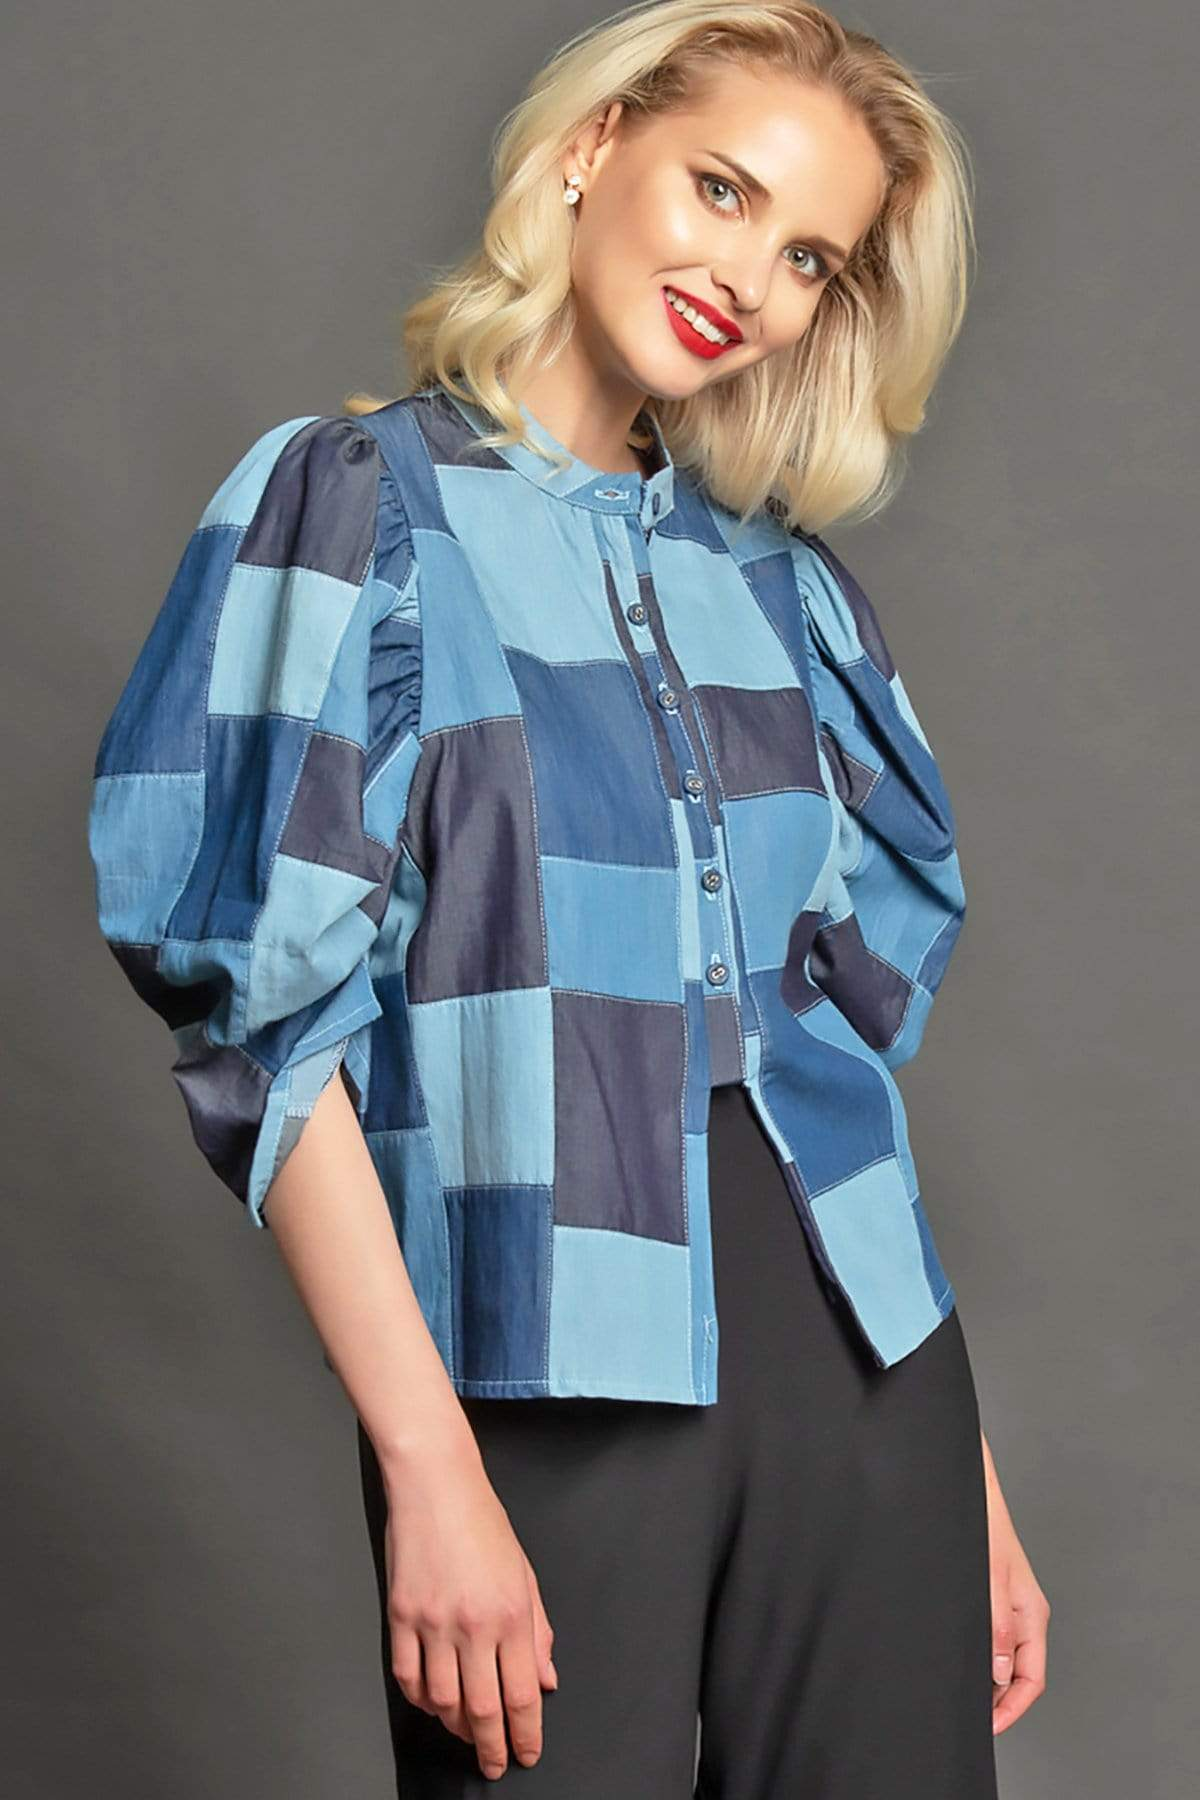 Eva Franco Top Victoria Top - Denim Patchwork